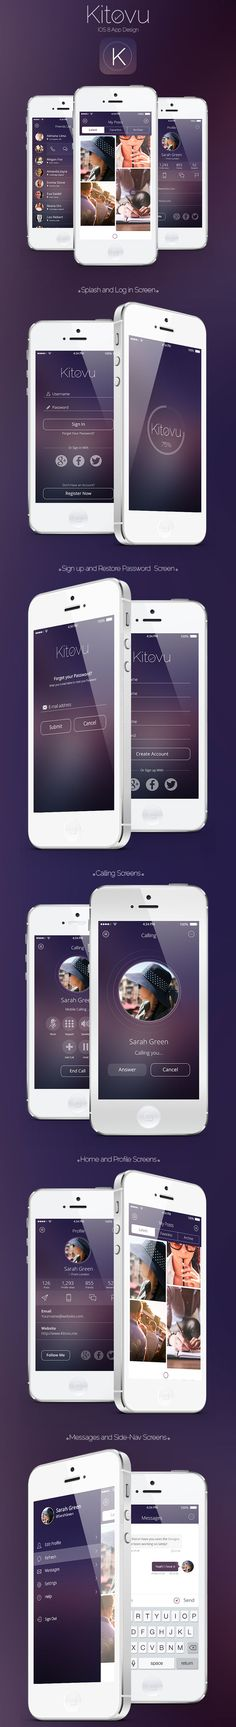 Daily Mobile UI Design Inspiration #340